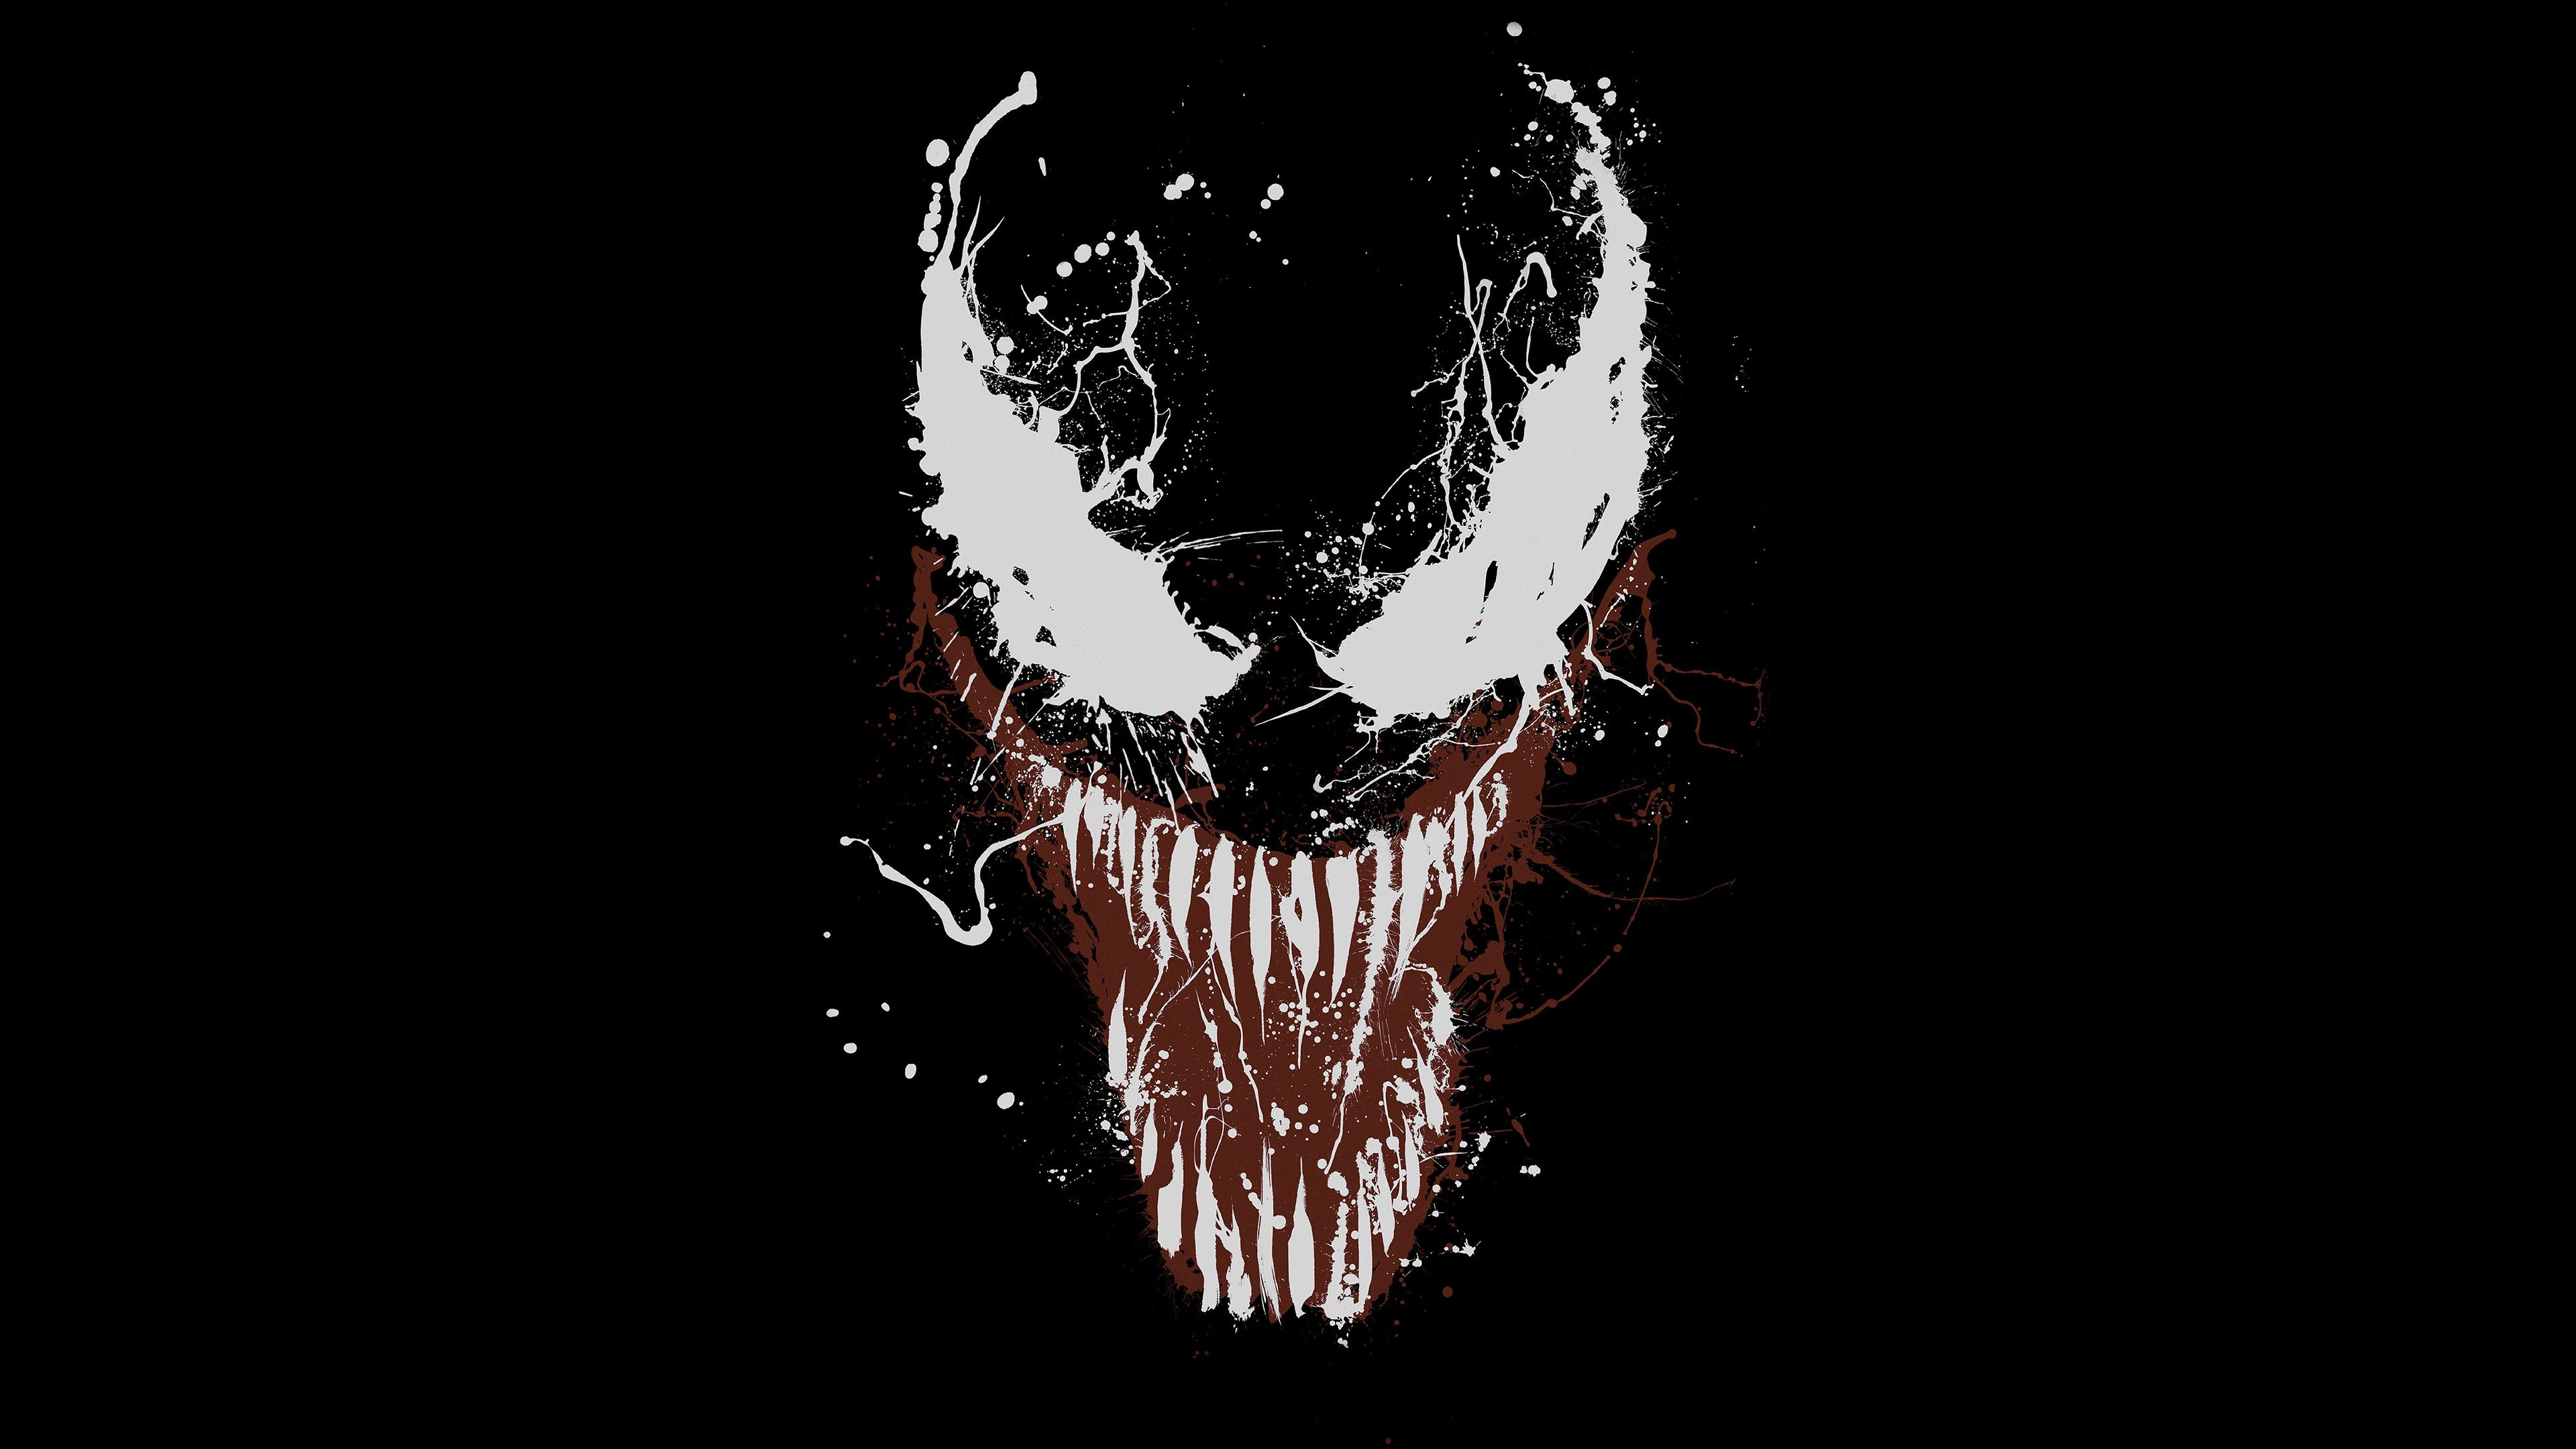 Venom Movie Poster 2018 Venom wallpapers venom movie wallpapers 3840x2160